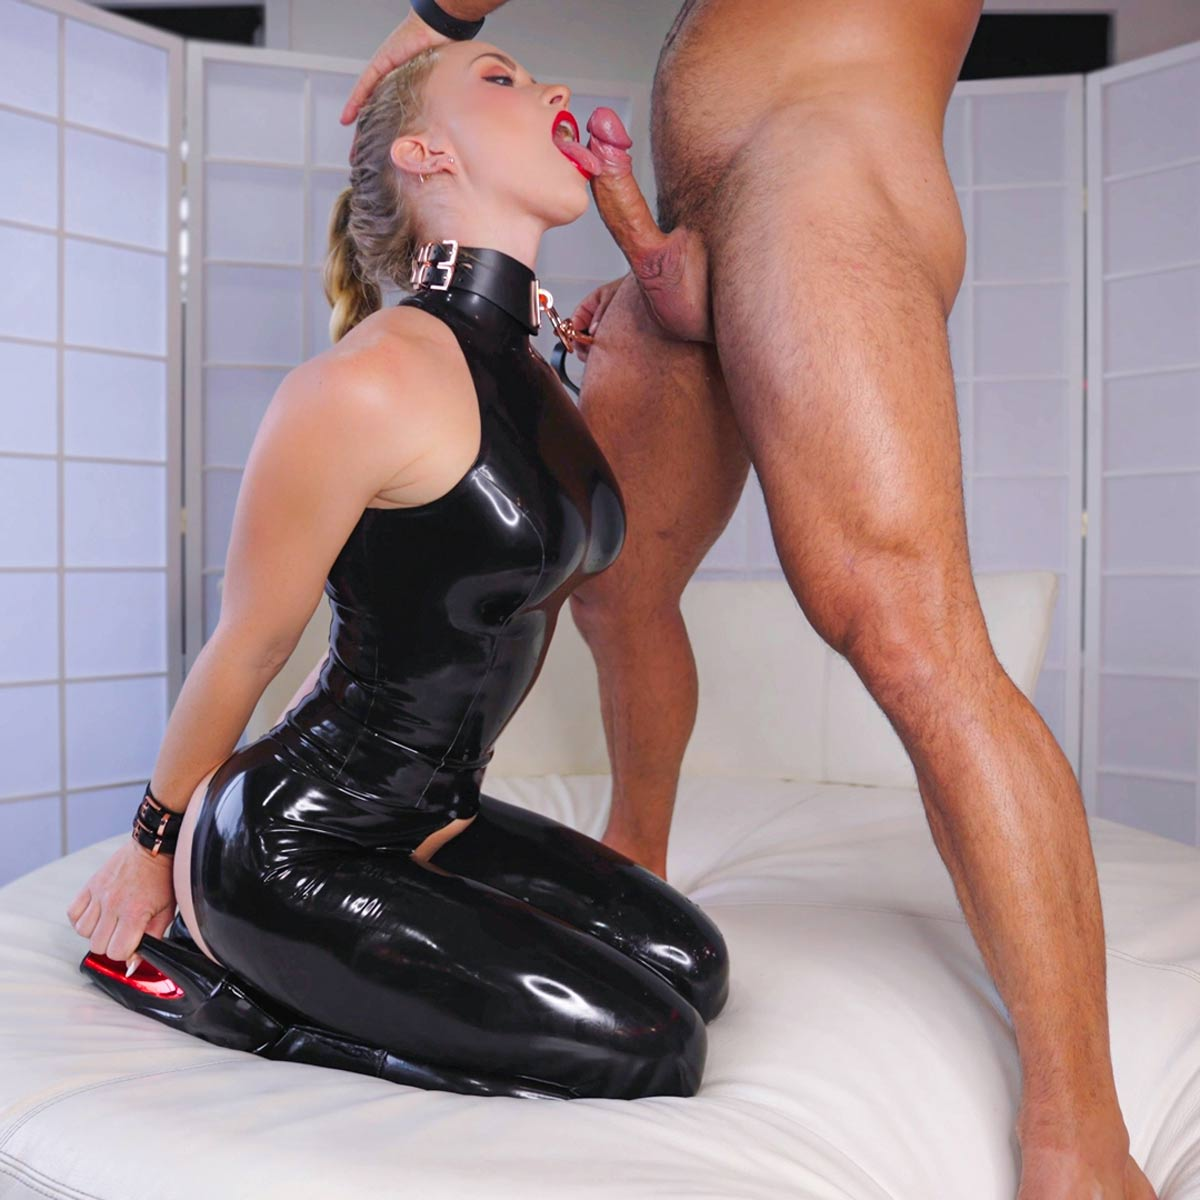 Scarlet Chase as a Latex Anal Sex Slave in a BDSM Fetish video at Evil Angel.